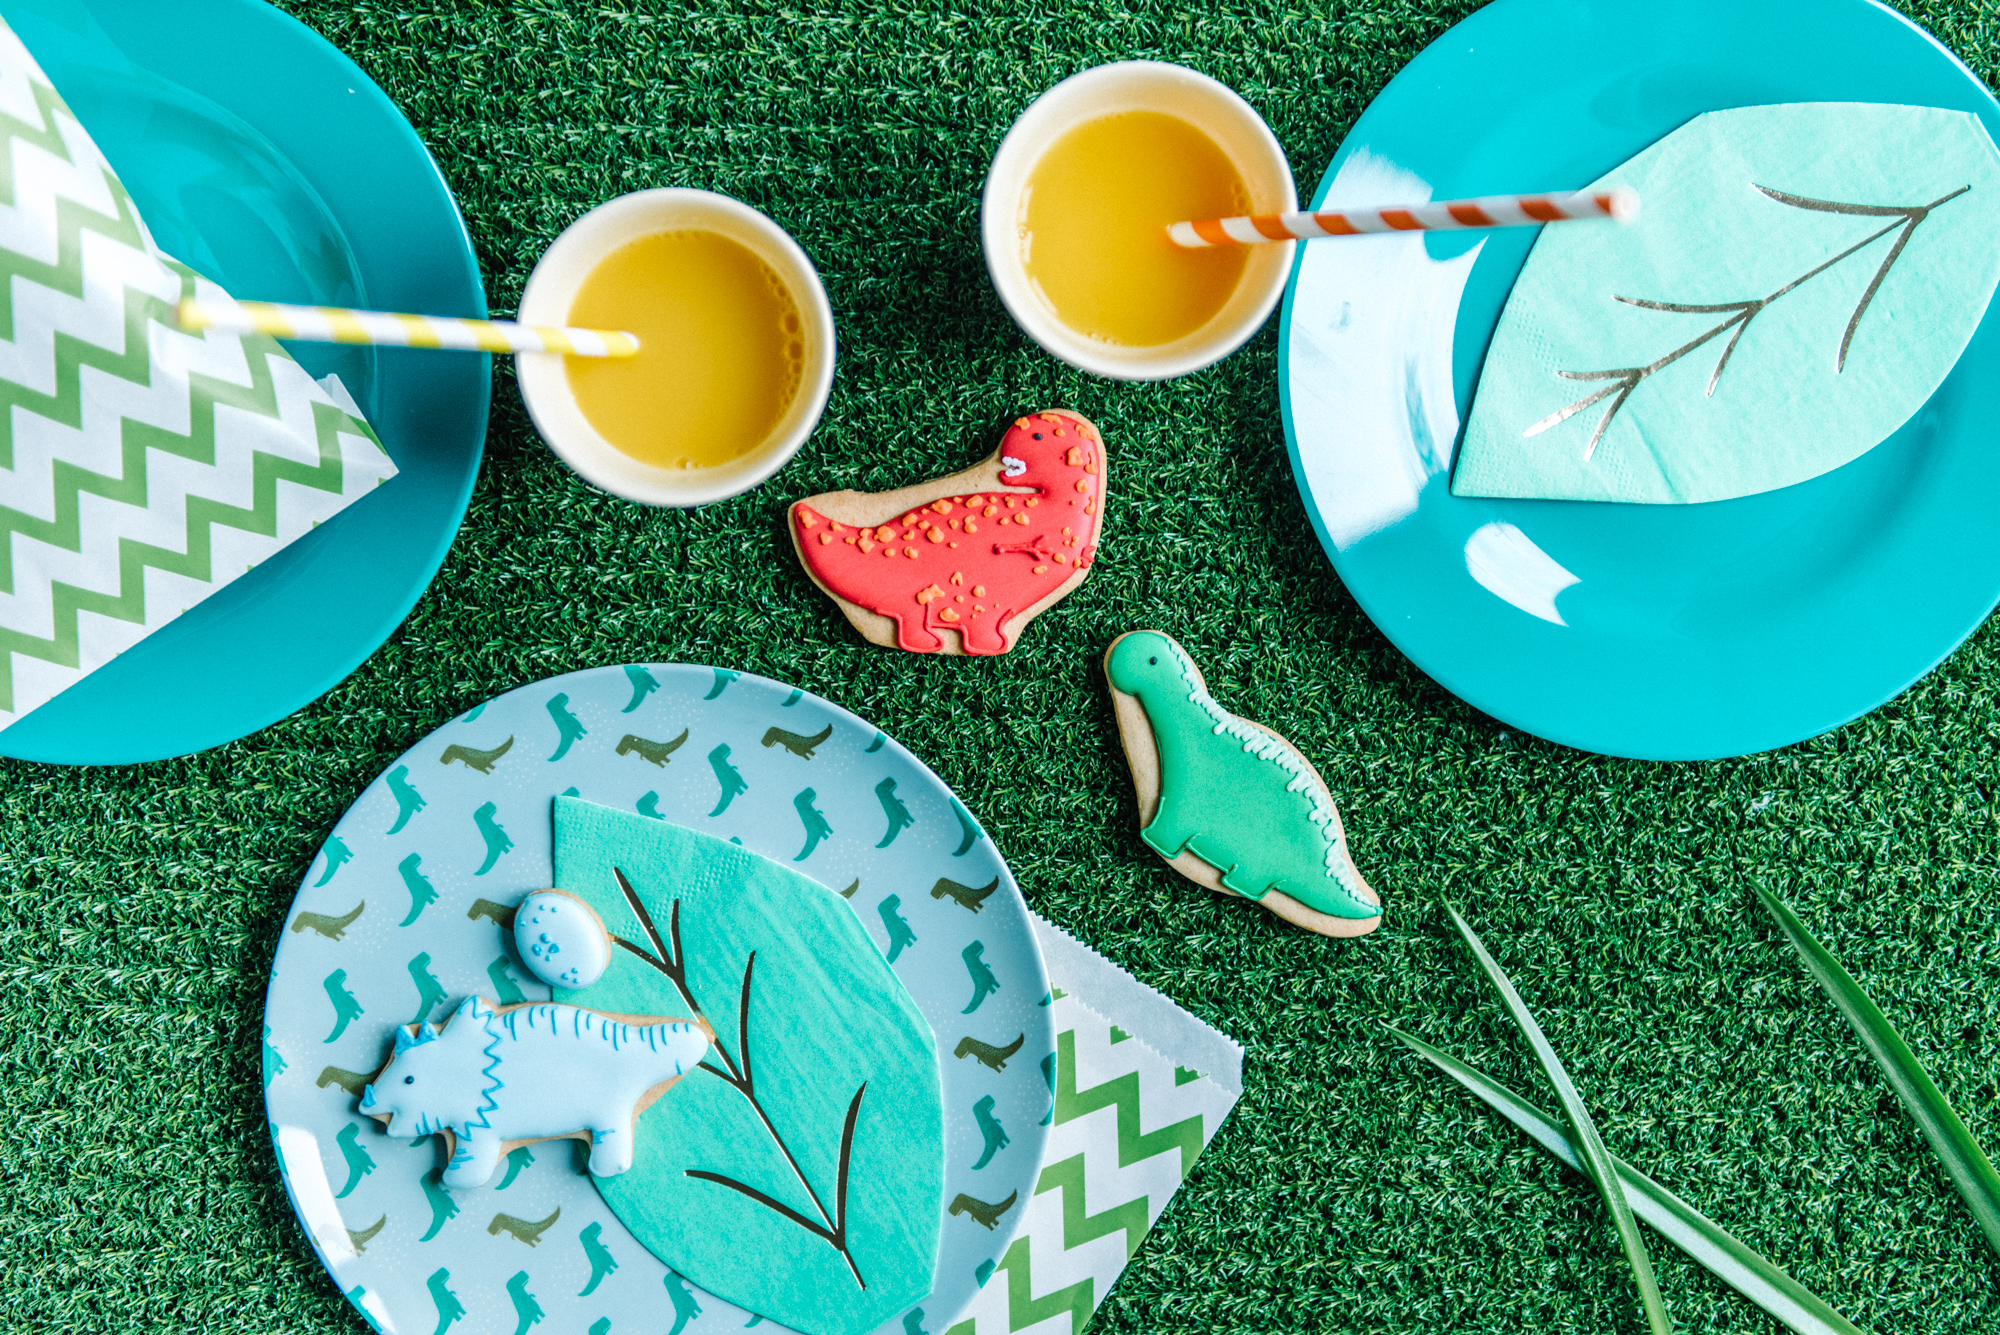 Shop By Party Theme - Whatever your party theme, our hired tableware and carefully sourced table accessories will help you get your party looking on point in an ecofriendly way.